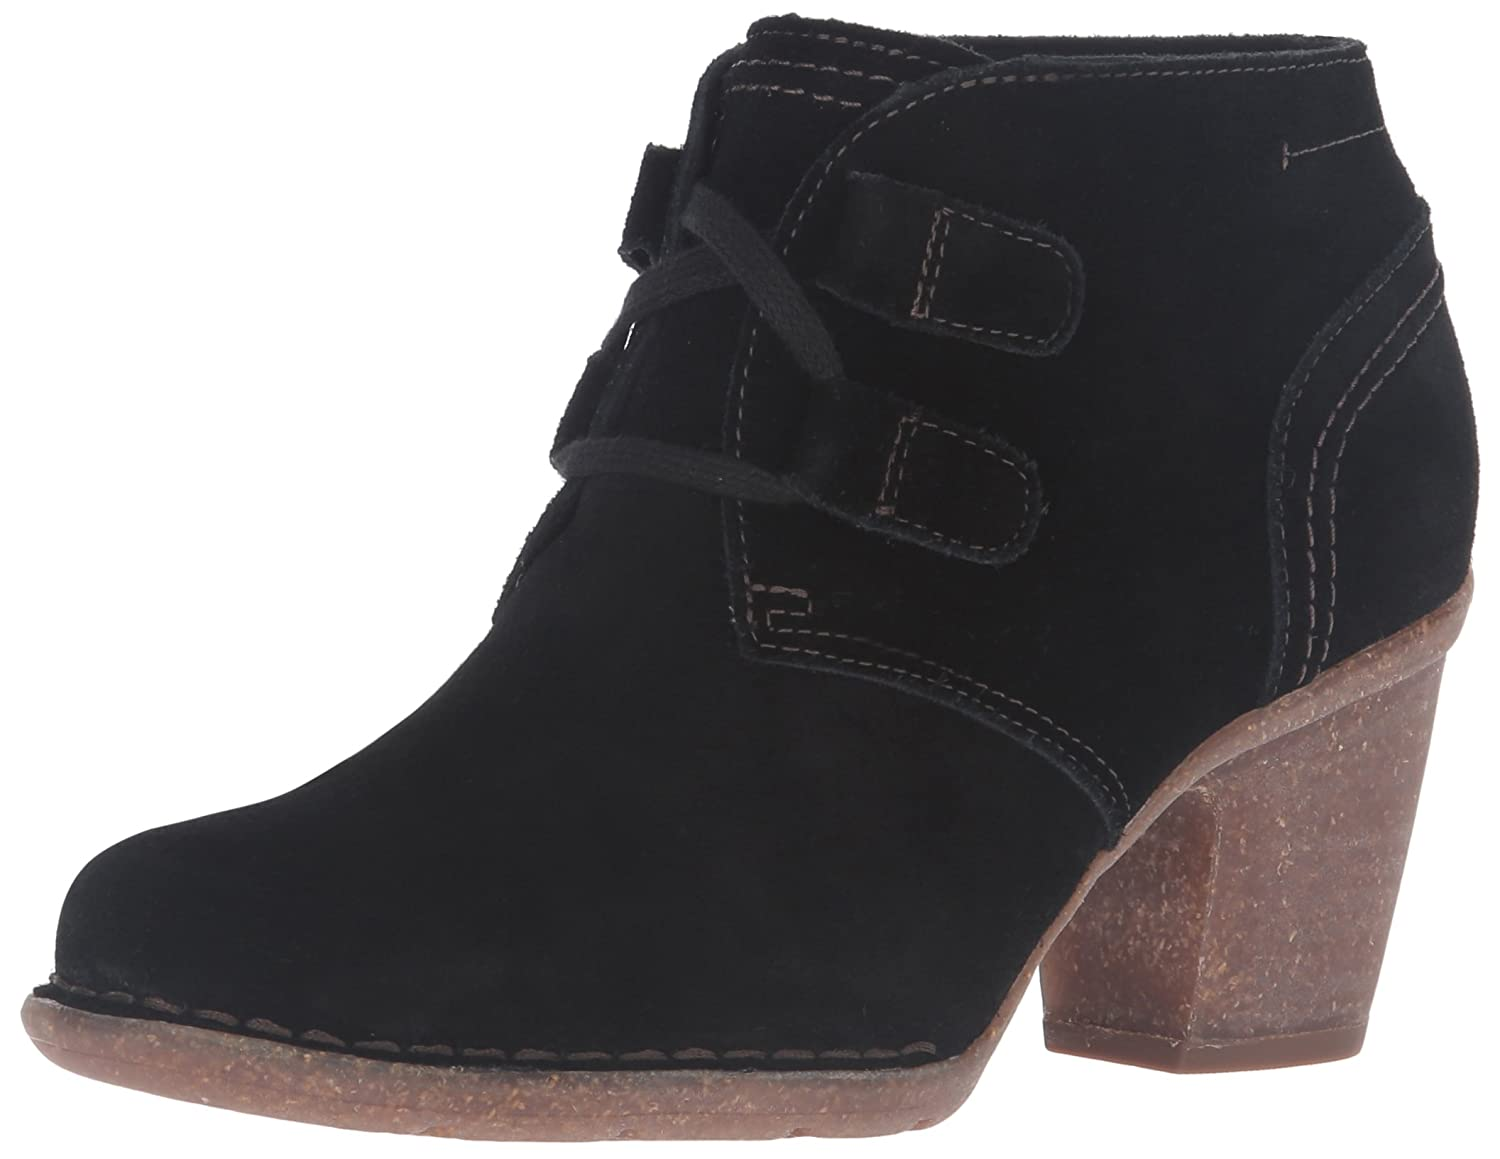 CLARKS Women's Carleta Lyon Boot B0195SP8FO 9.5 B(M) US|Black Suede